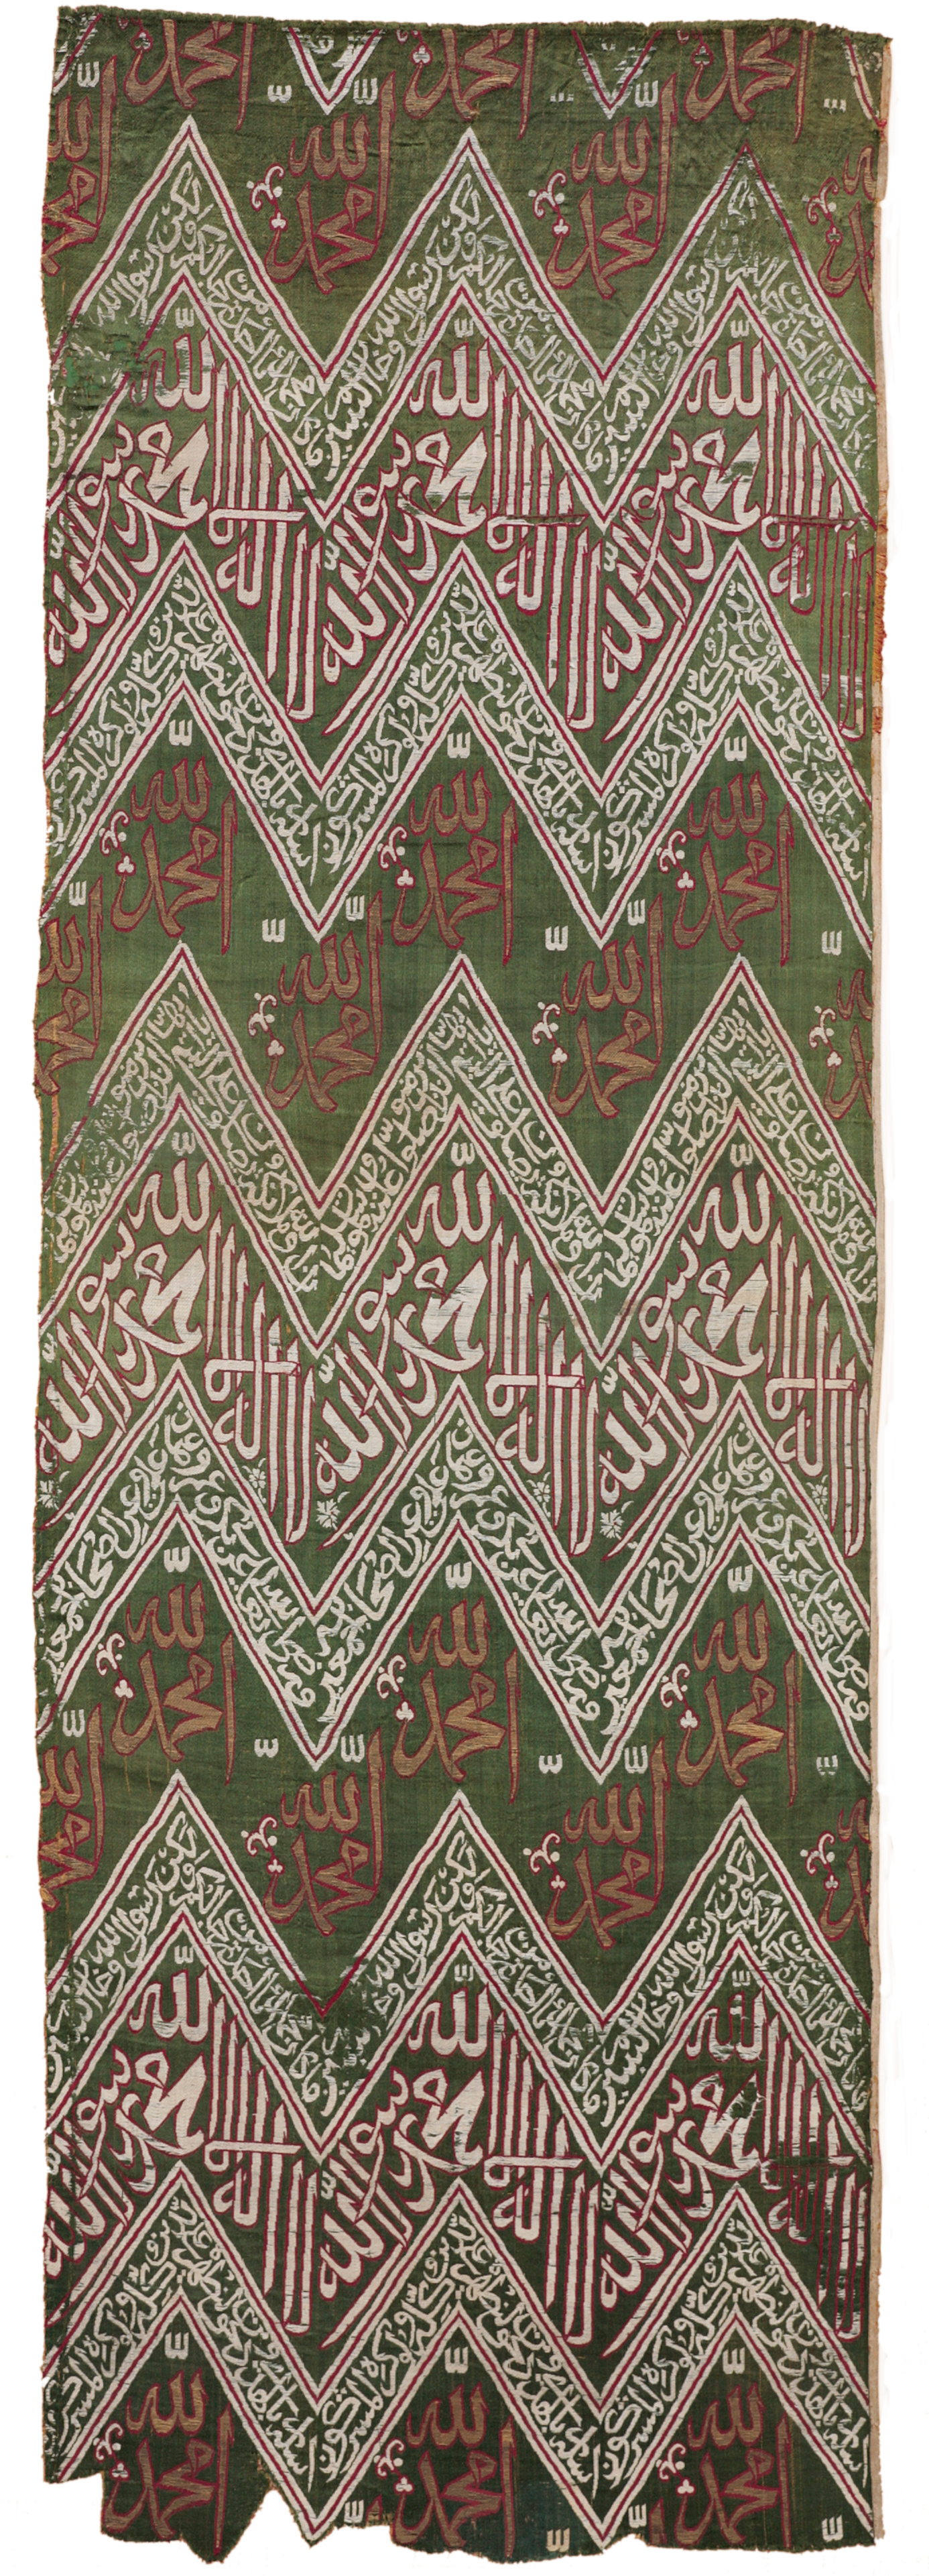 Section from the curtain for the external wall of the Prophet's tomb